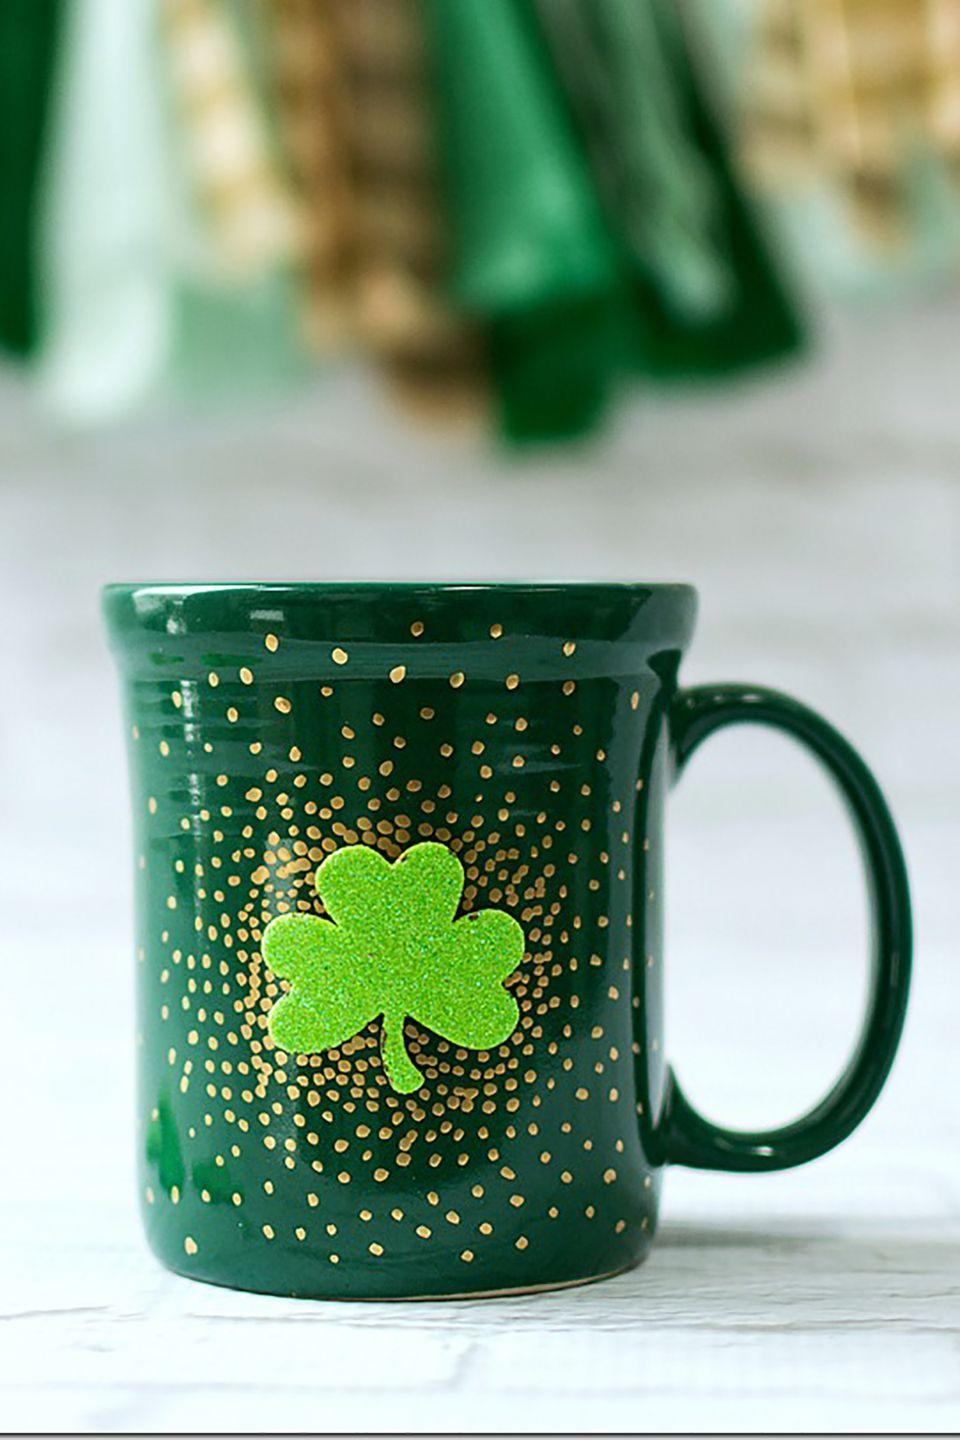 """<p>Enjoy the holiday while you sip coffee or tea with this festive mug.</p><p><strong>Get the tutorial at <a href=""""http://www.itallstartedwithpaint.com/irish-coffee-mugs/"""" rel=""""nofollow noopener"""" target=""""_blank"""" data-ylk=""""slk:It All Started with Paint"""" class=""""link rapid-noclick-resp"""">It All Started with Paint</a>.</strong></p><p><strong><a class=""""link rapid-noclick-resp"""" href=""""https://www.amazon.com/Krylon-K09901A00-Leafing-Gold-Ounce/dp/B003ZTNENS/ref=sr_1_8?tag=syn-yahoo-20&ascsubtag=%5Bartid%7C10050.g.4035%5Bsrc%7Cyahoo-us"""" rel=""""nofollow noopener"""" target=""""_blank"""" data-ylk=""""slk:SHOP GOLD PEN"""">SHOP GOLD PEN</a><br></strong></p>"""